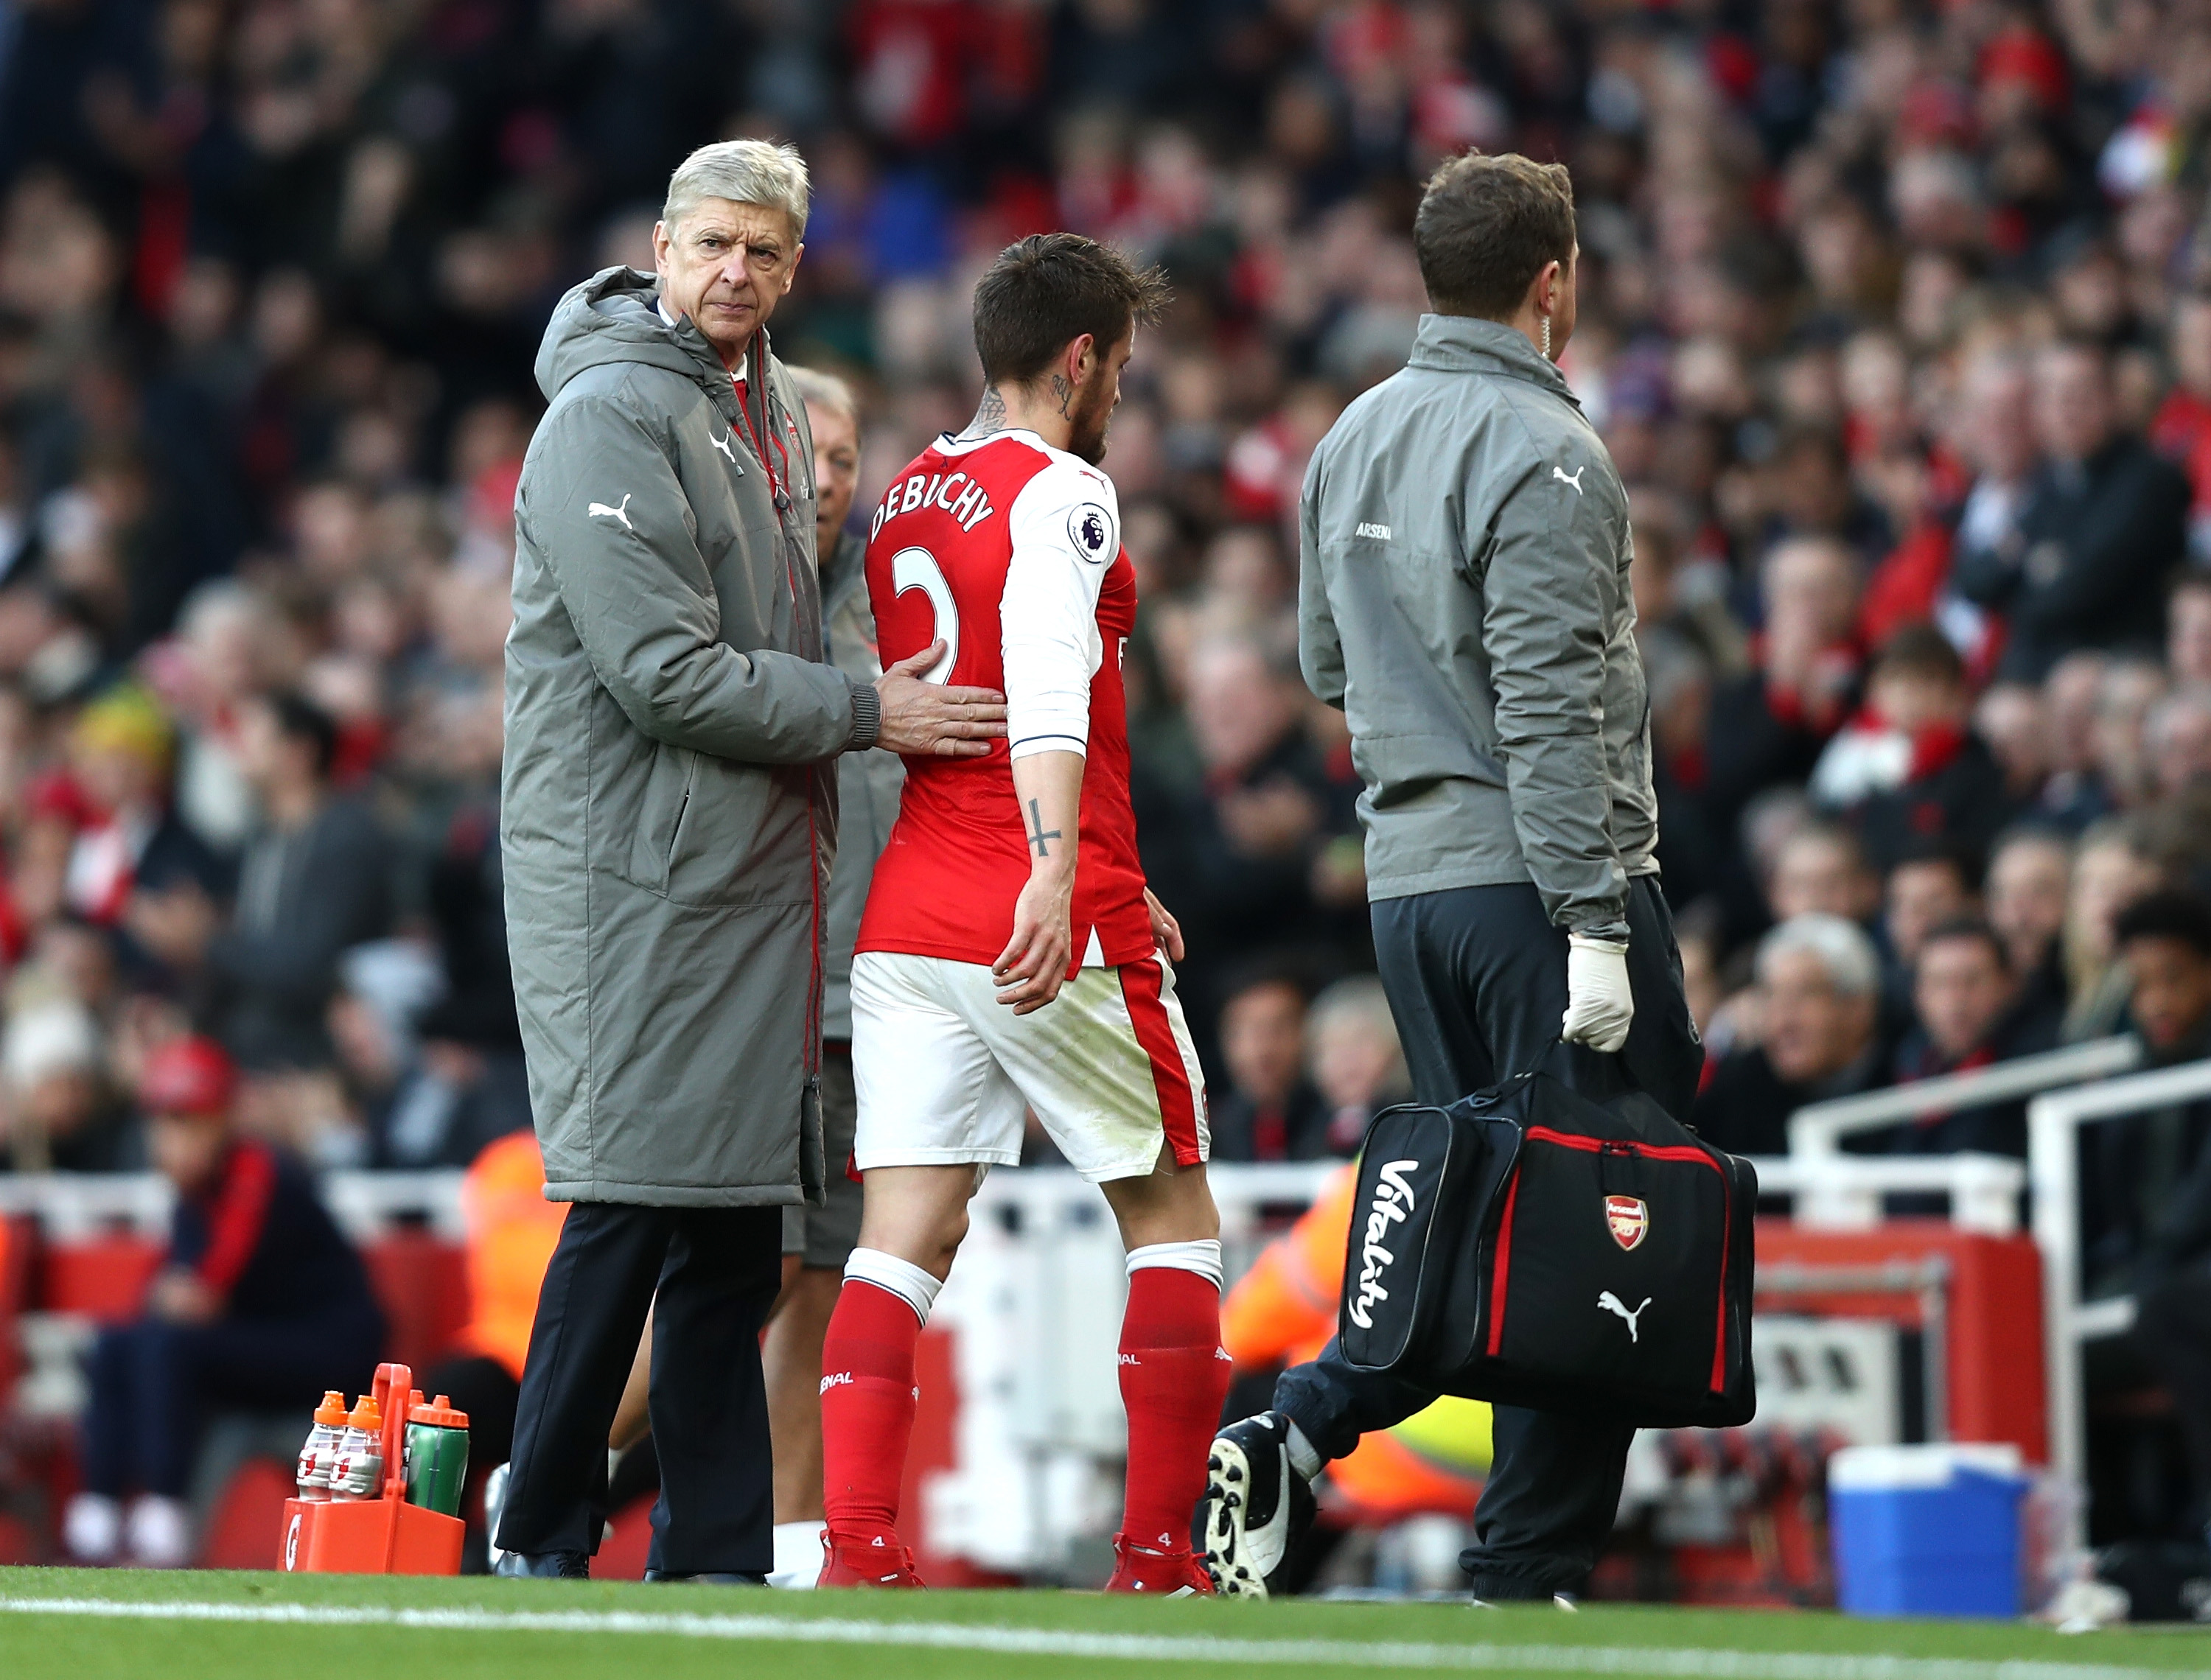 Arsenal defender Mathieu Debuchy ruled out for six weeks with 'severe' hamstring injury, Arsene Wenger confirms